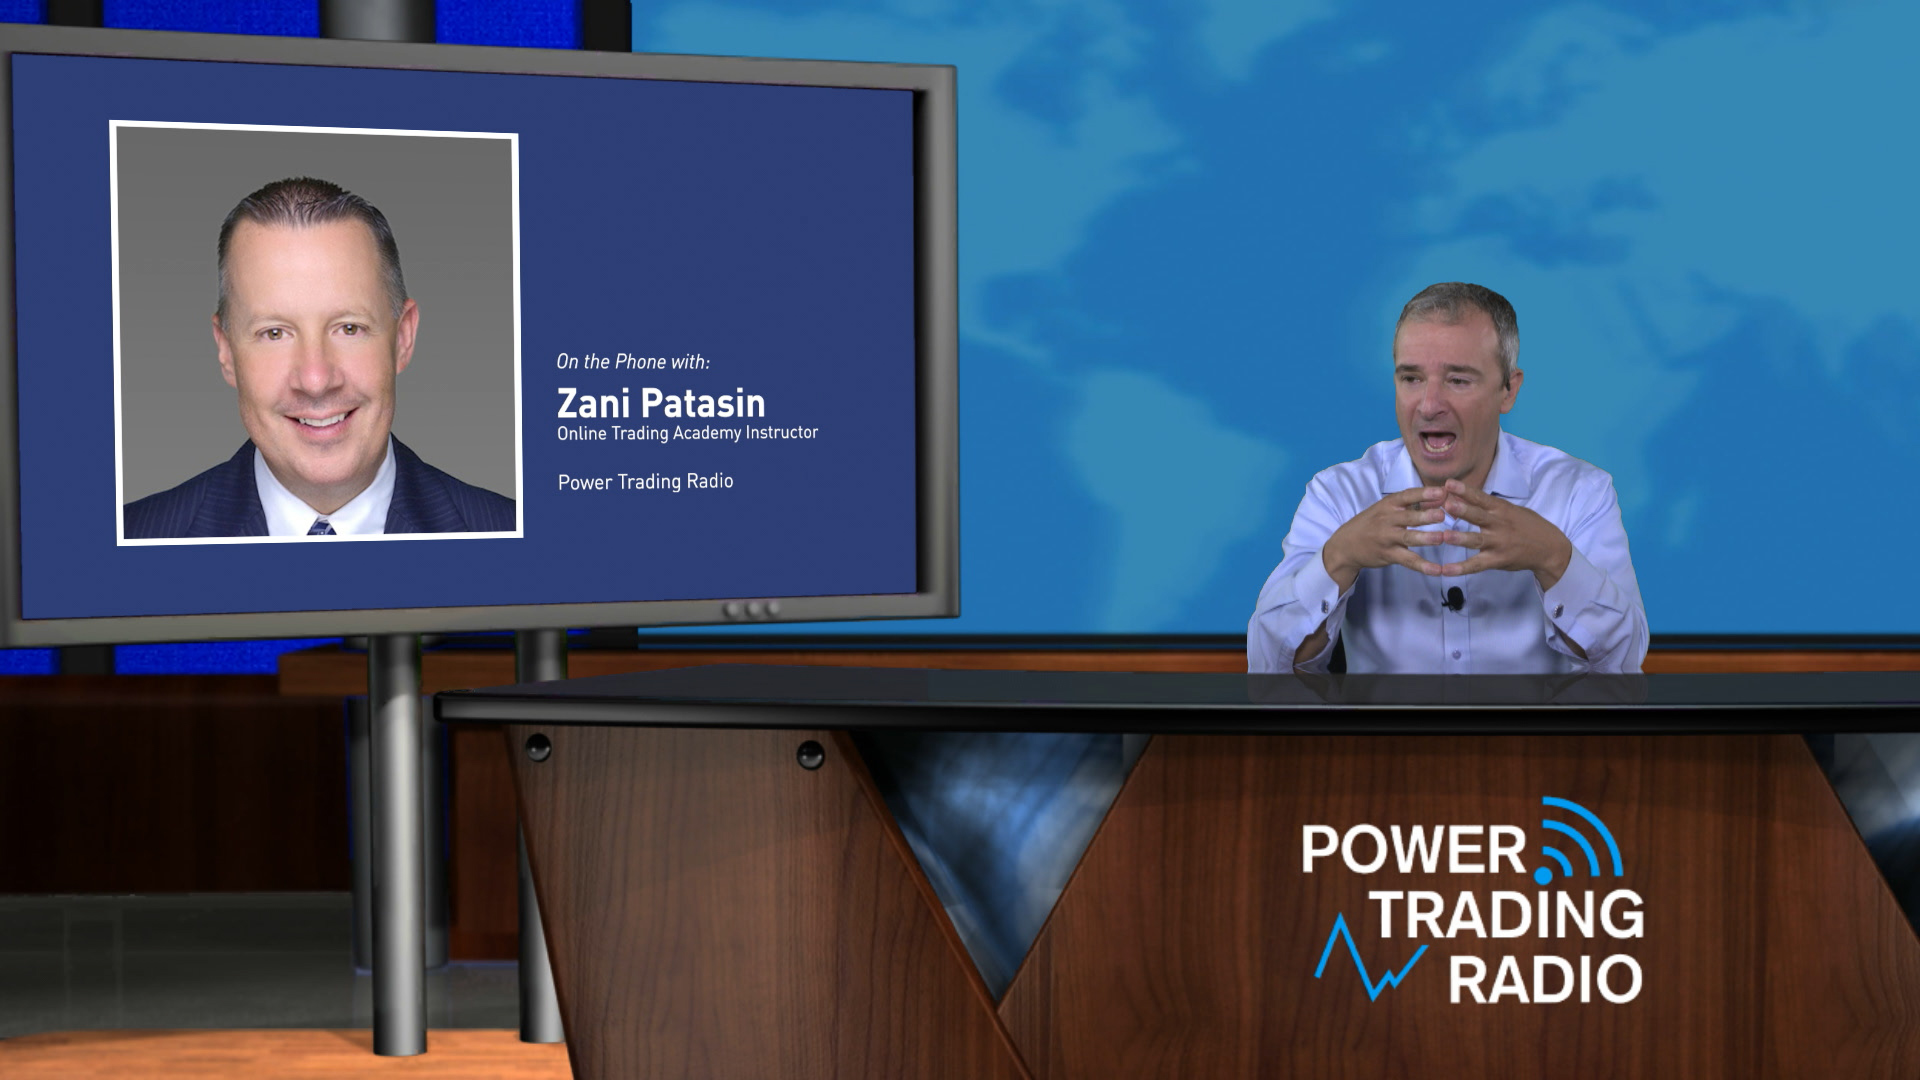 Power Trading Radio - Daily Day Trading and Investing Podcasts